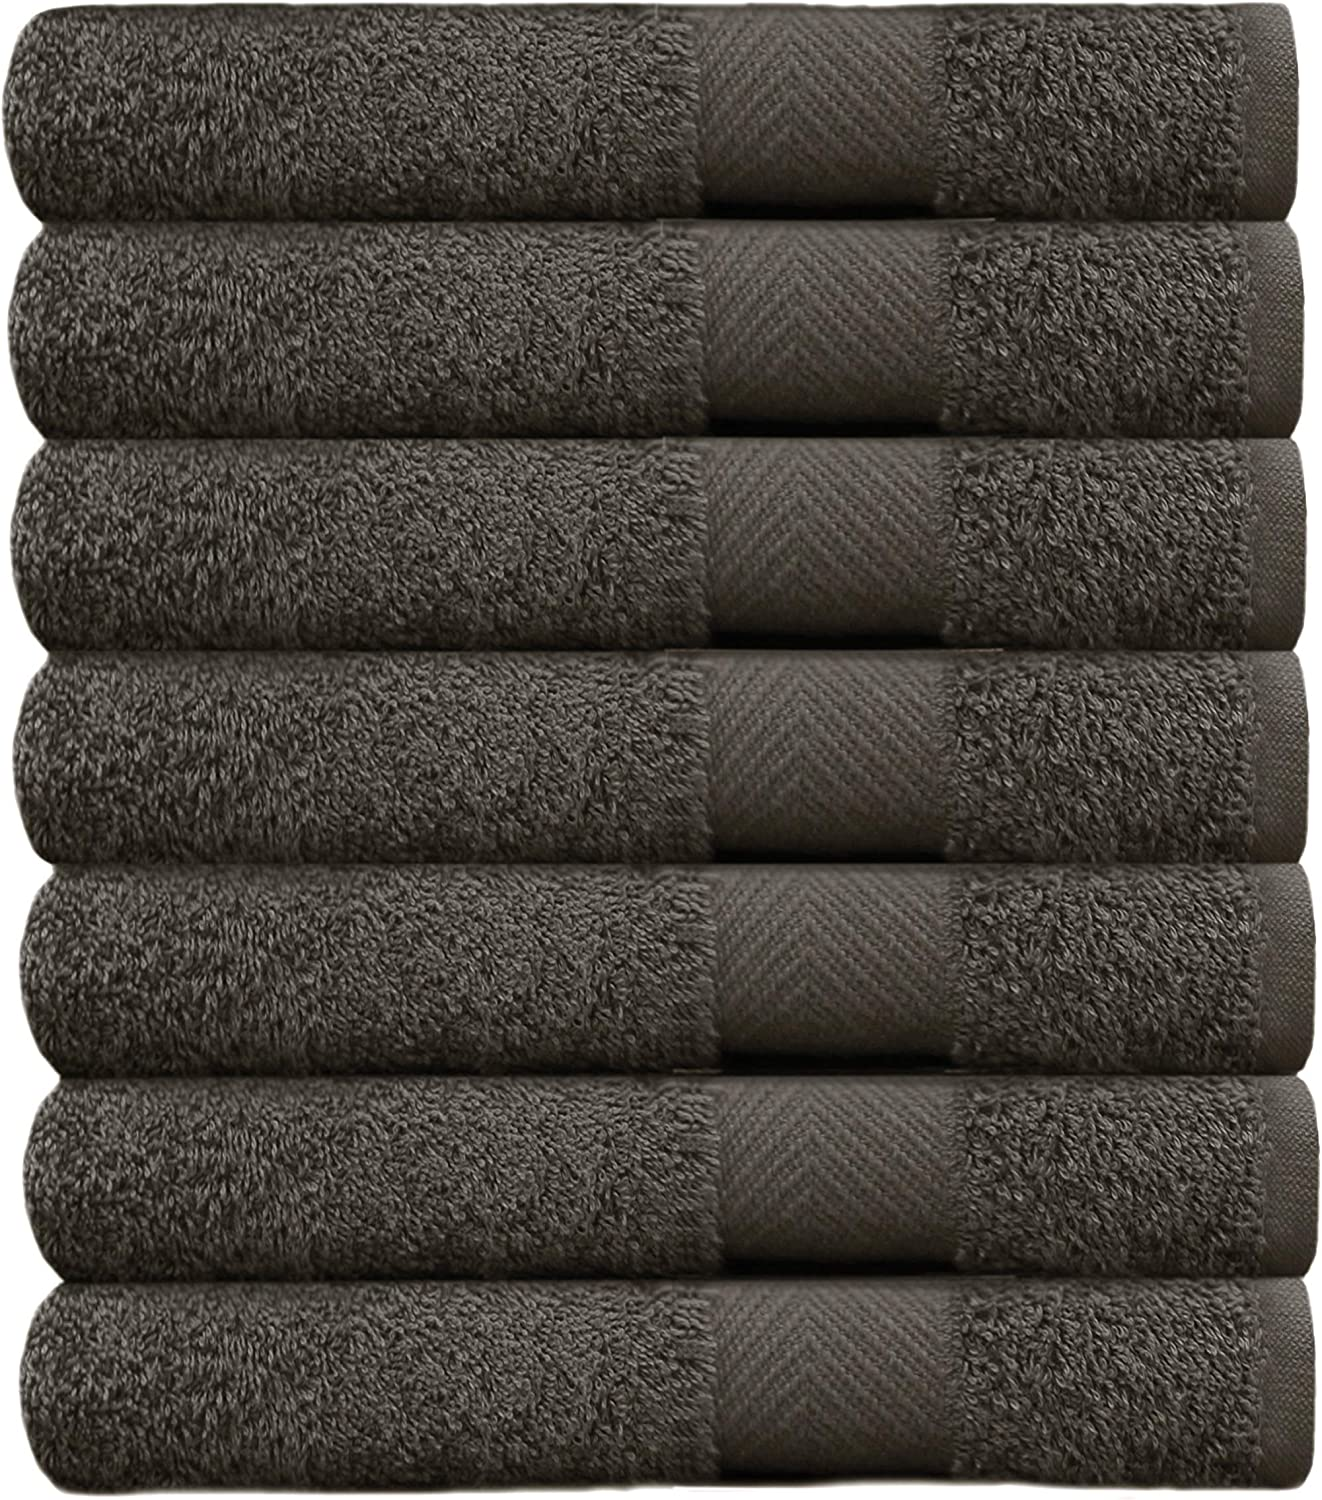 COTTON CRAFT Simplicity Ringspun Cotton Set of 7 Lightweight Bath Towels, 27 inch x 52 inch, Charcoal